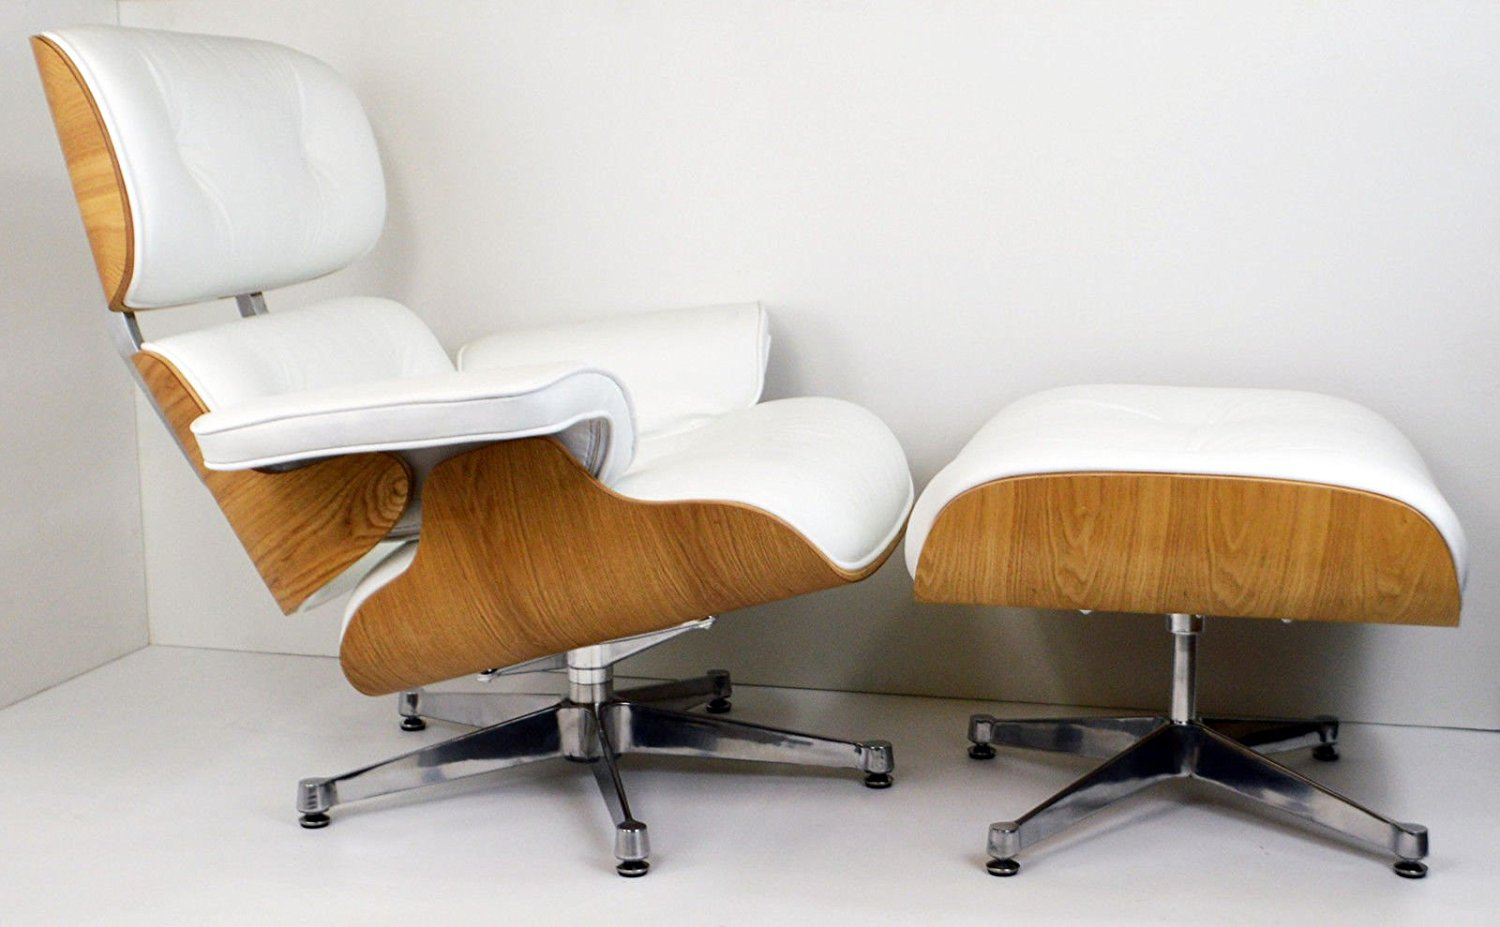 Tremendous Eames Swivel Chair 20 Delightful Desk Chairs Brit Co Eames Bralicious Painted Fabric Chair Ideas Braliciousco